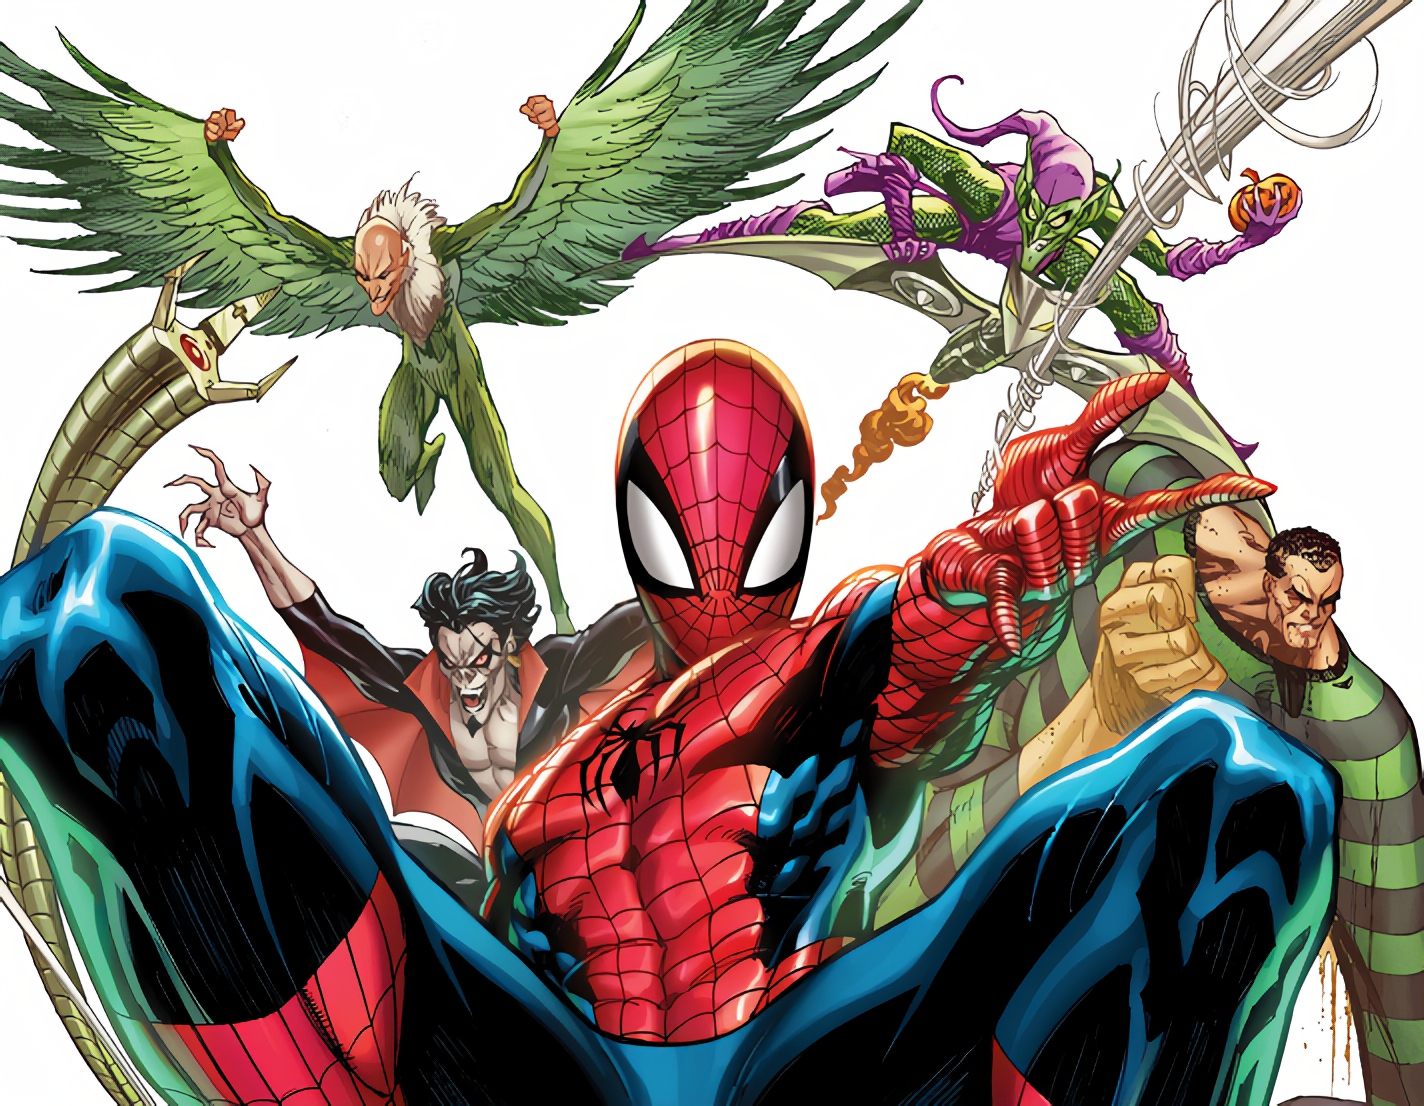 Spider-Man and his amazing friends (and foes) come out in J. Scott Campbell variant cover